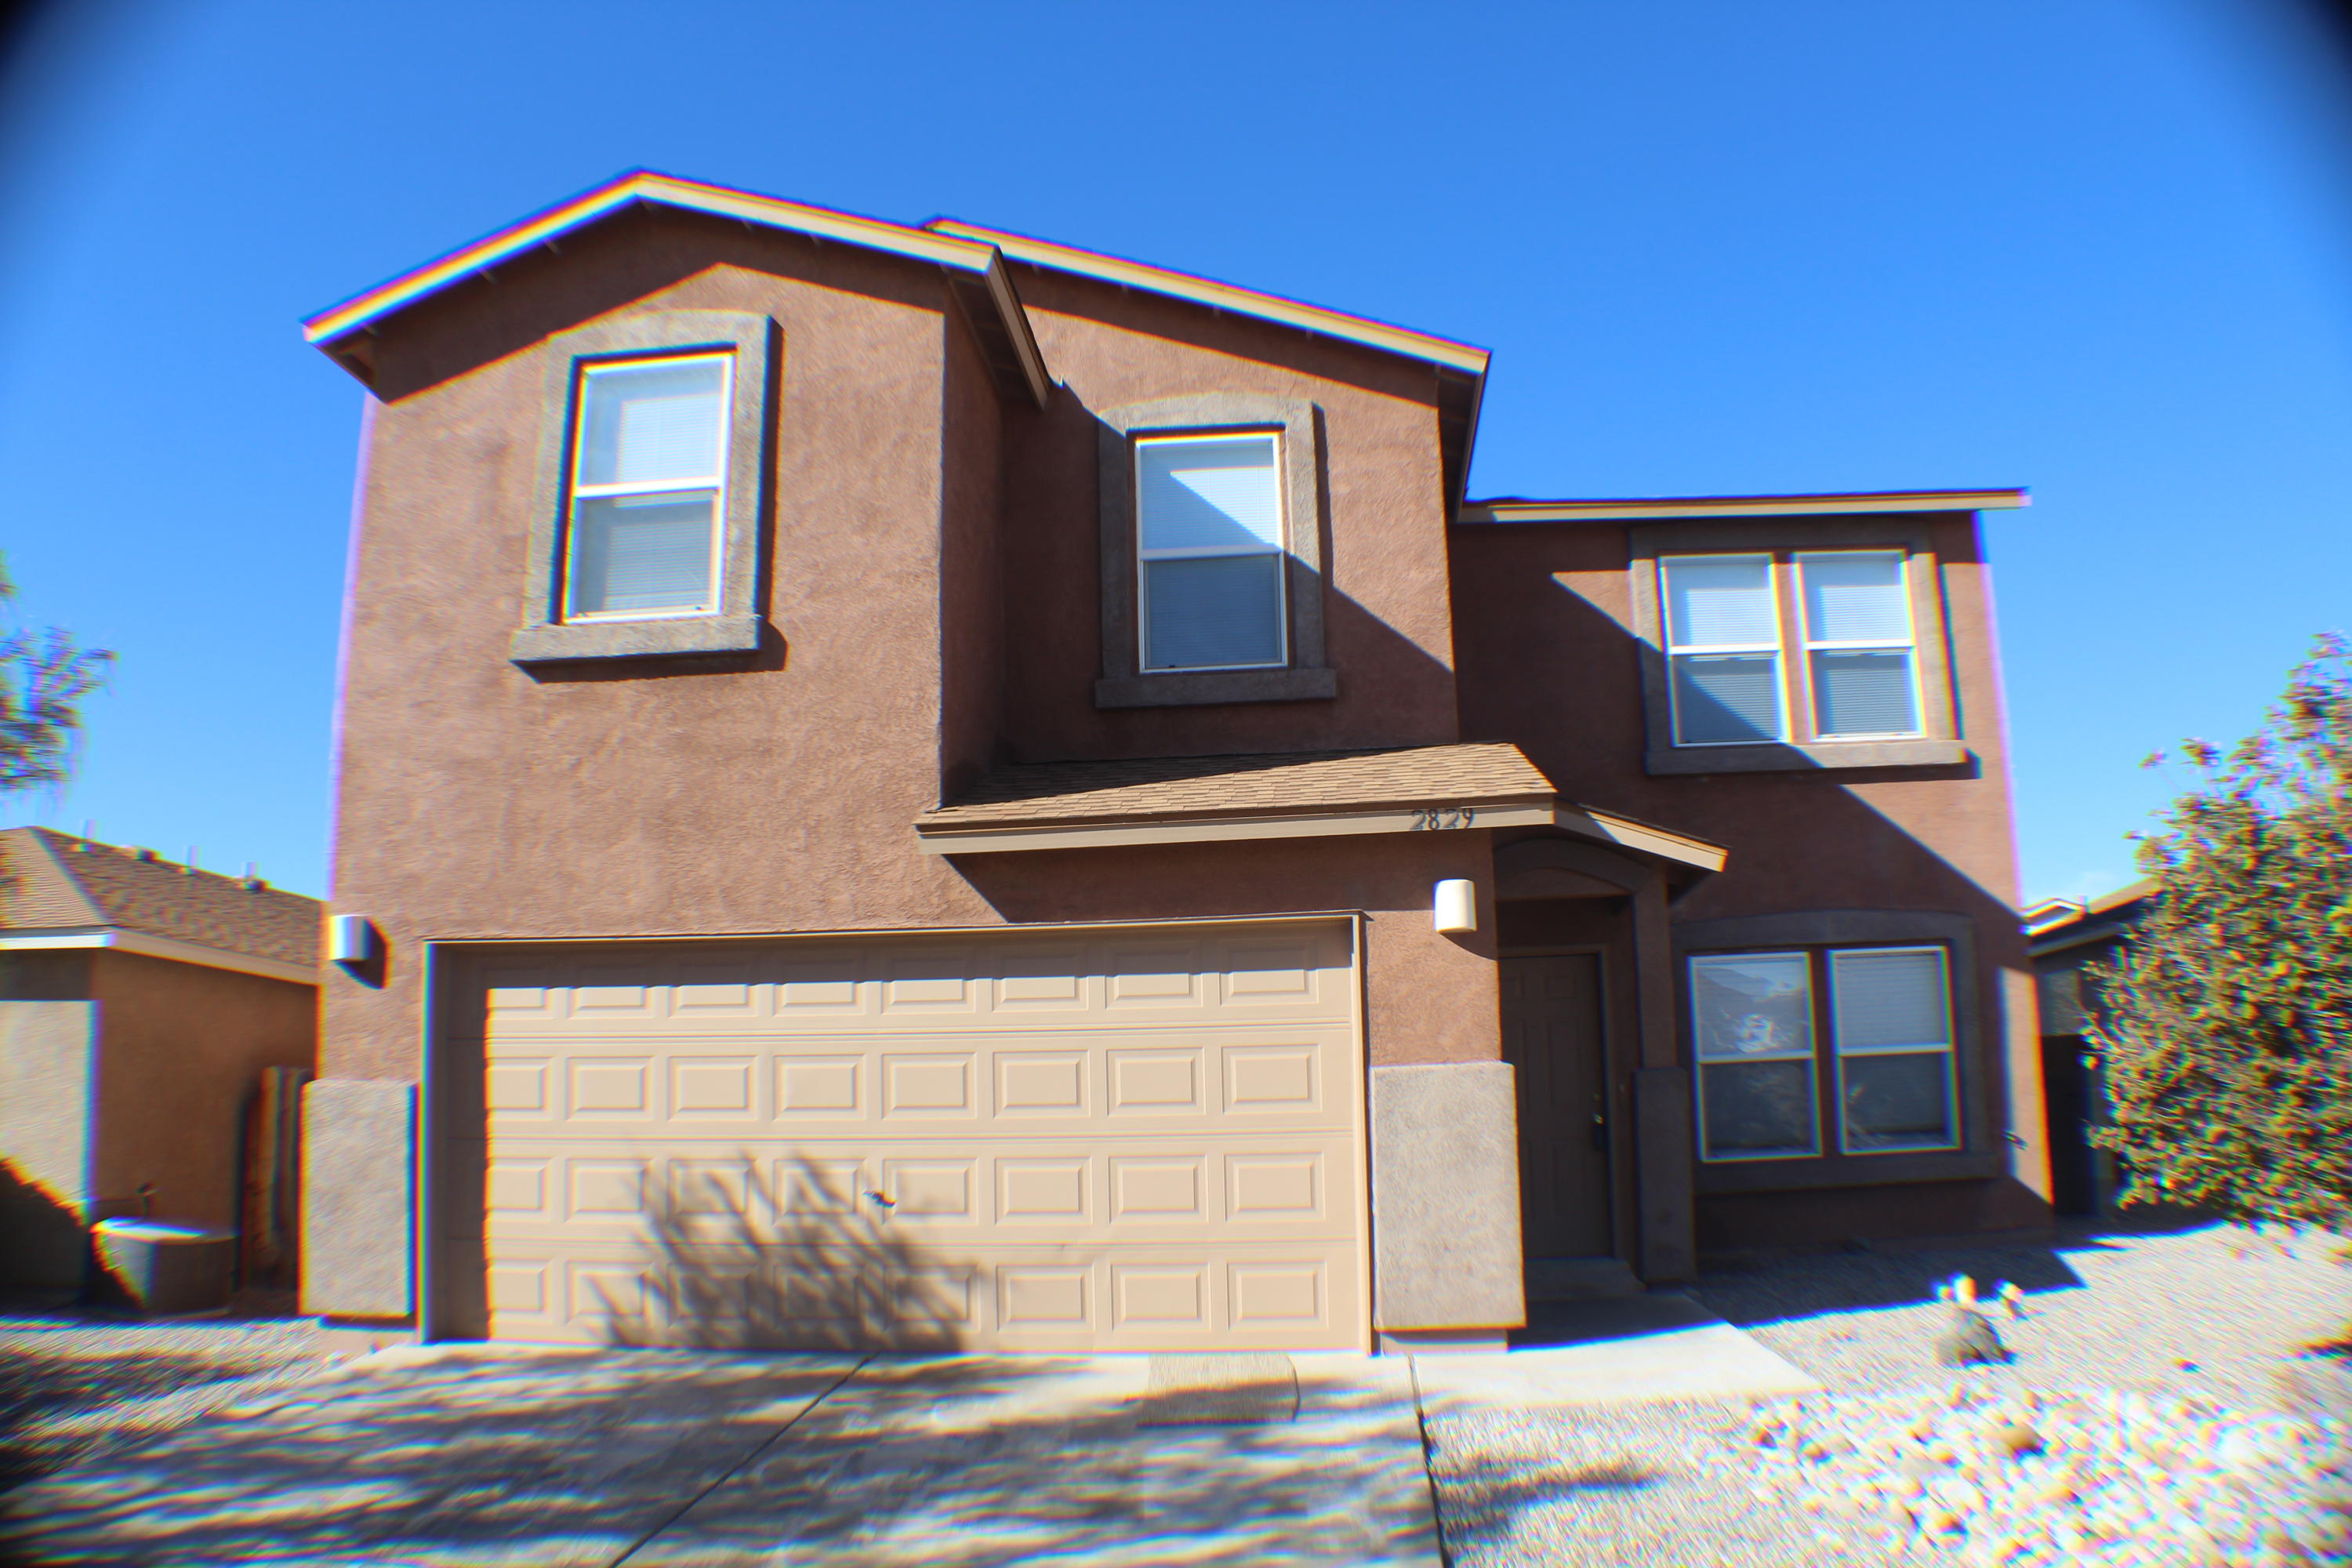 Move in ready Four bedroom home has new paint, carpet, counter tops, range/oven, dishwasher and garage door opener..Recent roof and hot water heater.  Show and sell!